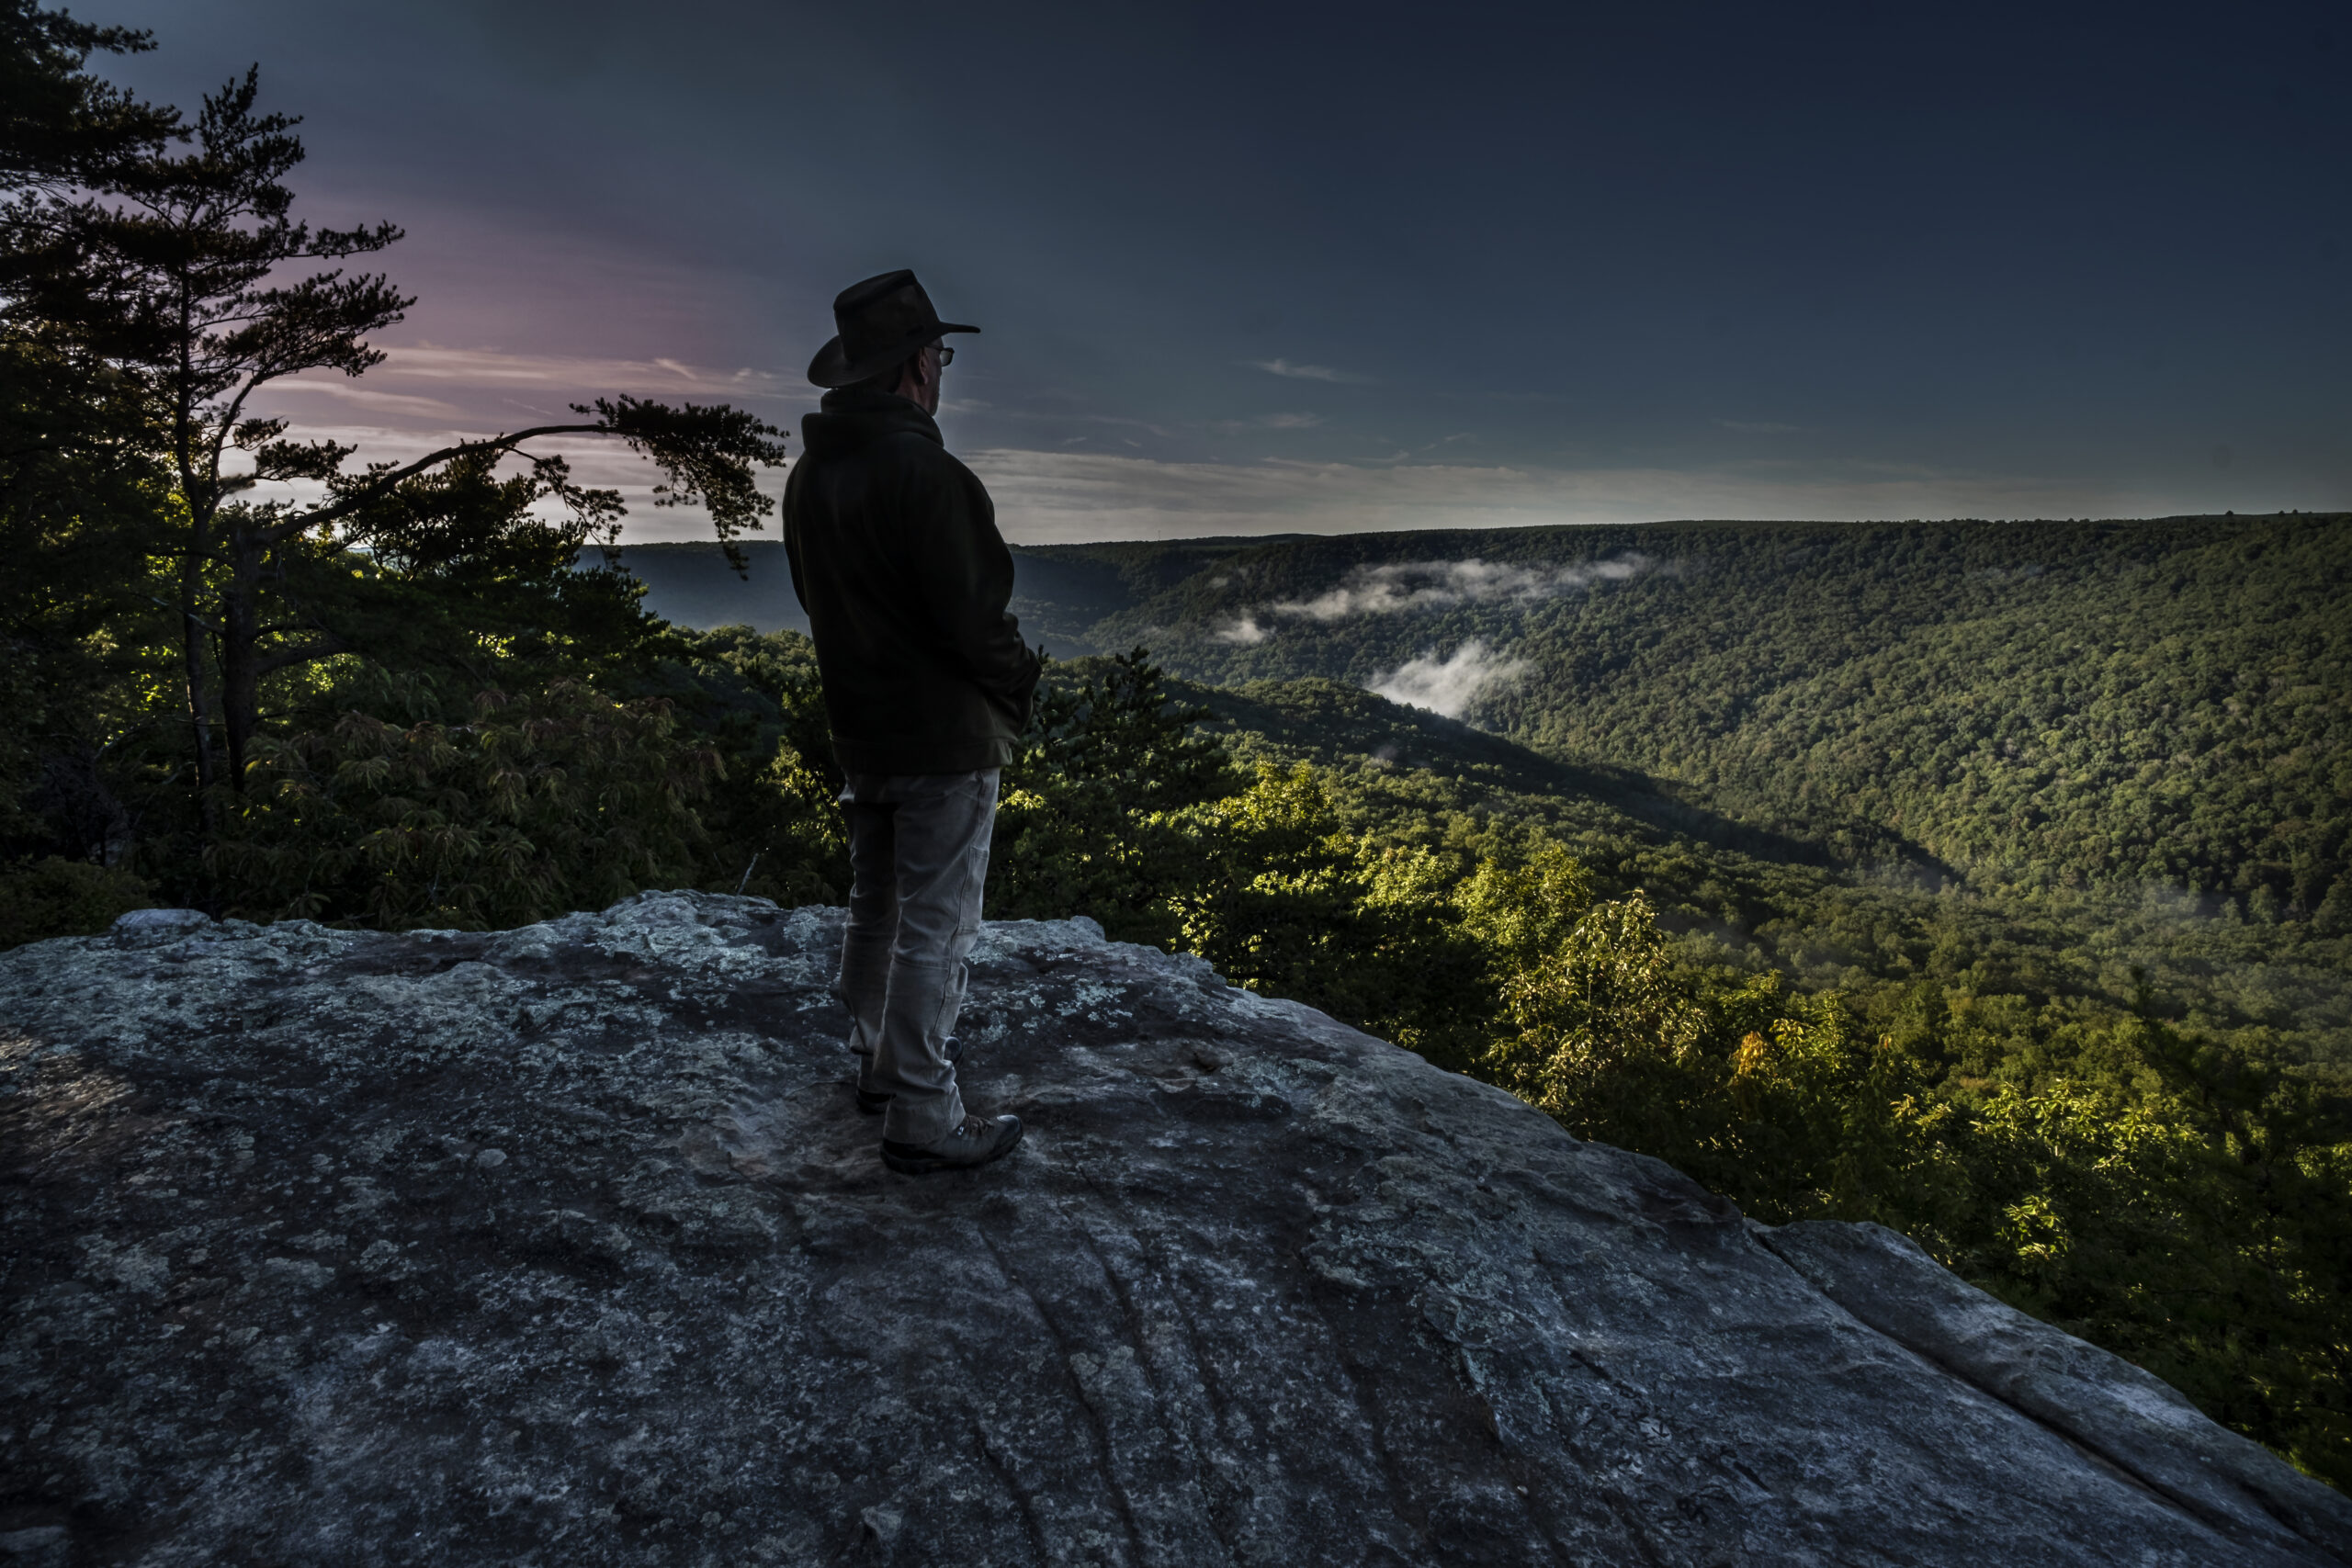 Tennessee Wildlife Resources Agency plans to raze old-growth forest